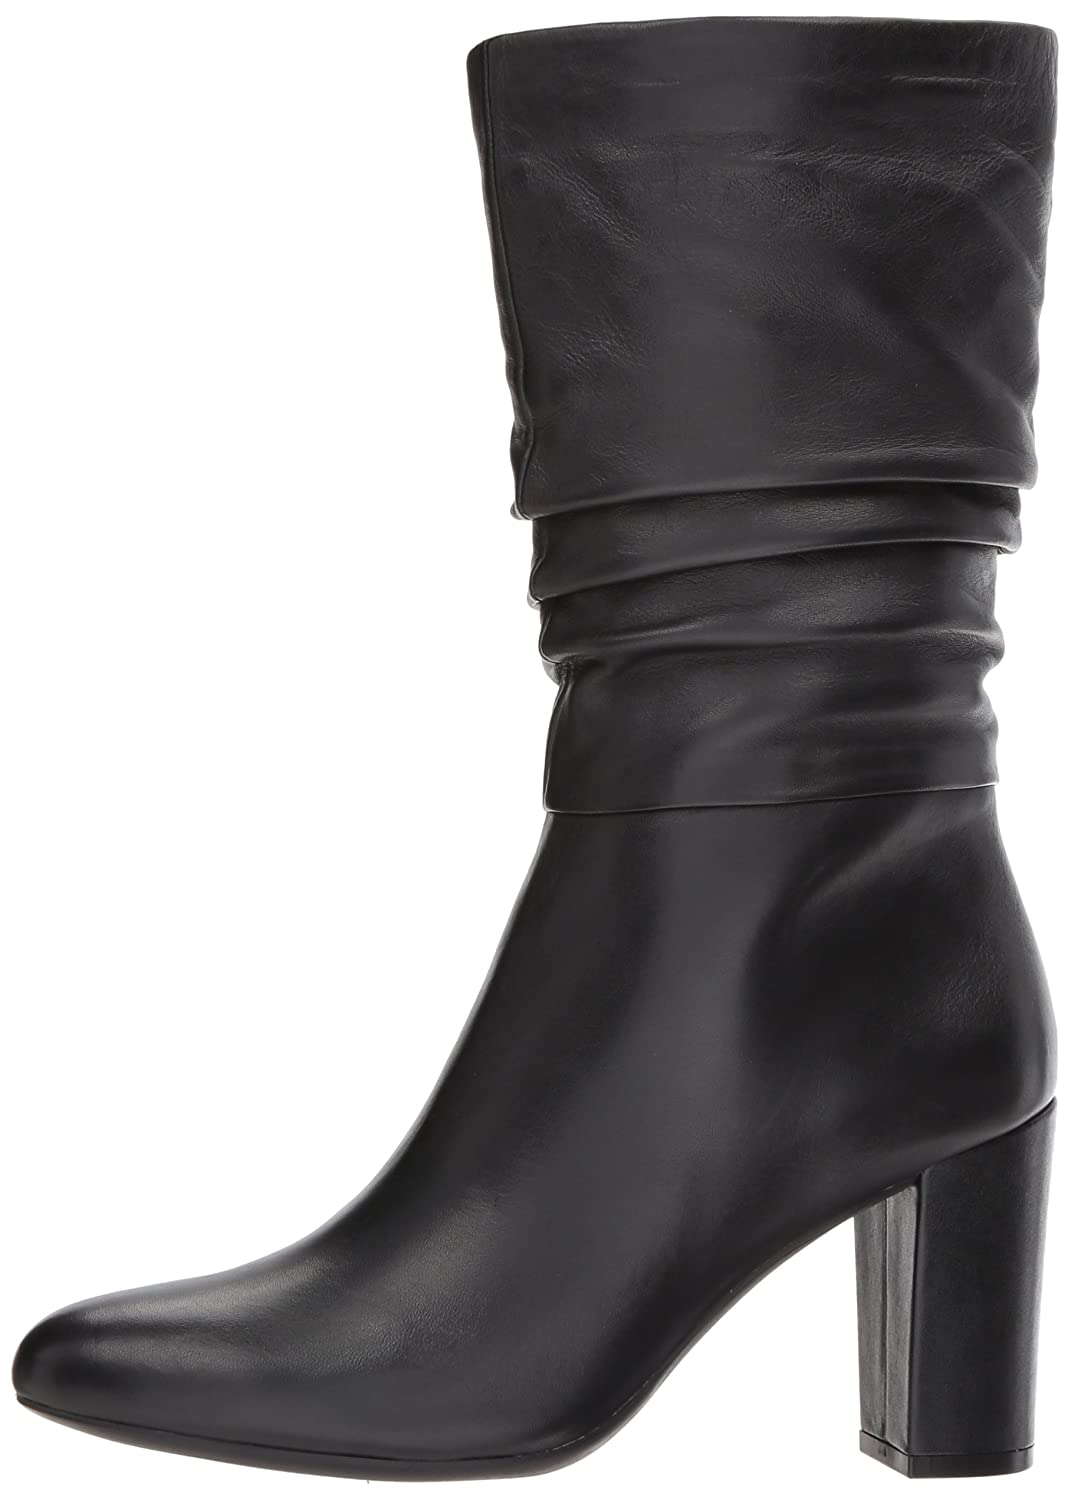 Anne Klein Women's Nysha Leather Fashion Boot B07693VV1C 11 B(M) US|Black Leather